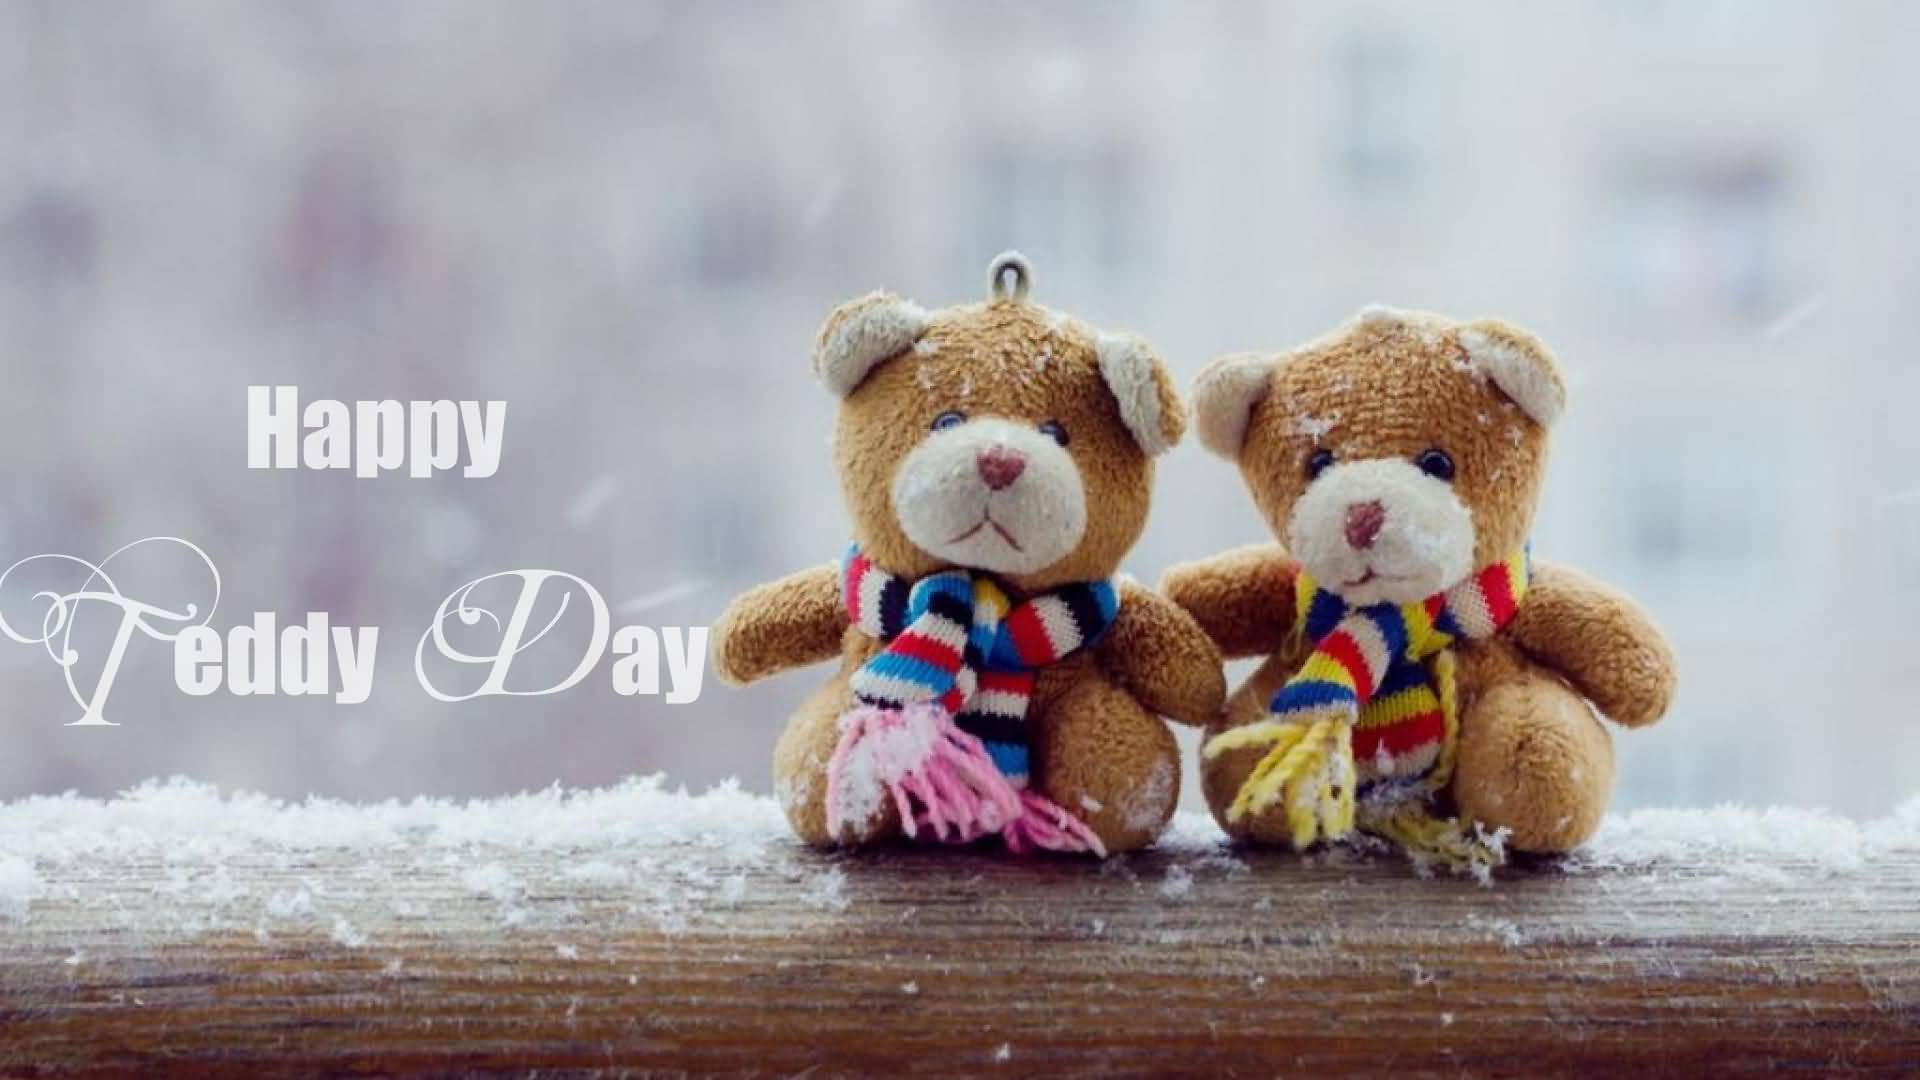 Happy Teddy Day wonderful wallpaper wishes for your love of your life